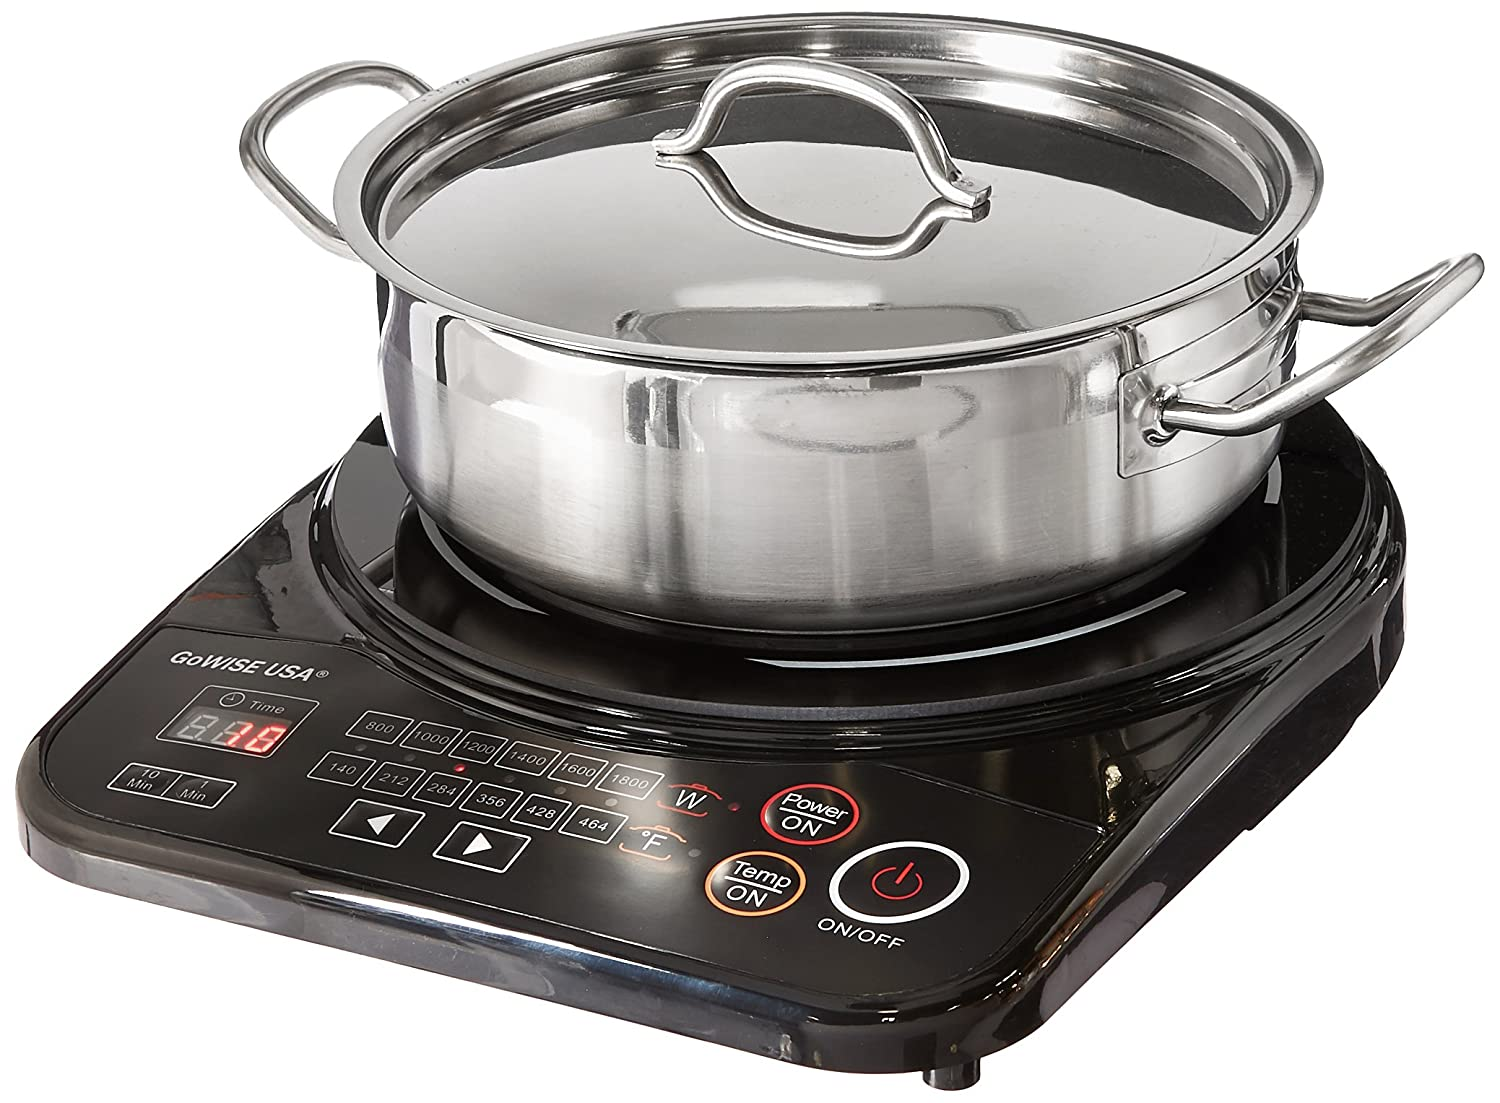 GoWISE USA GW22616 Portable Induction Glass Smooth top Cooktop w/Stainless Steel Pan & Lid 1800W